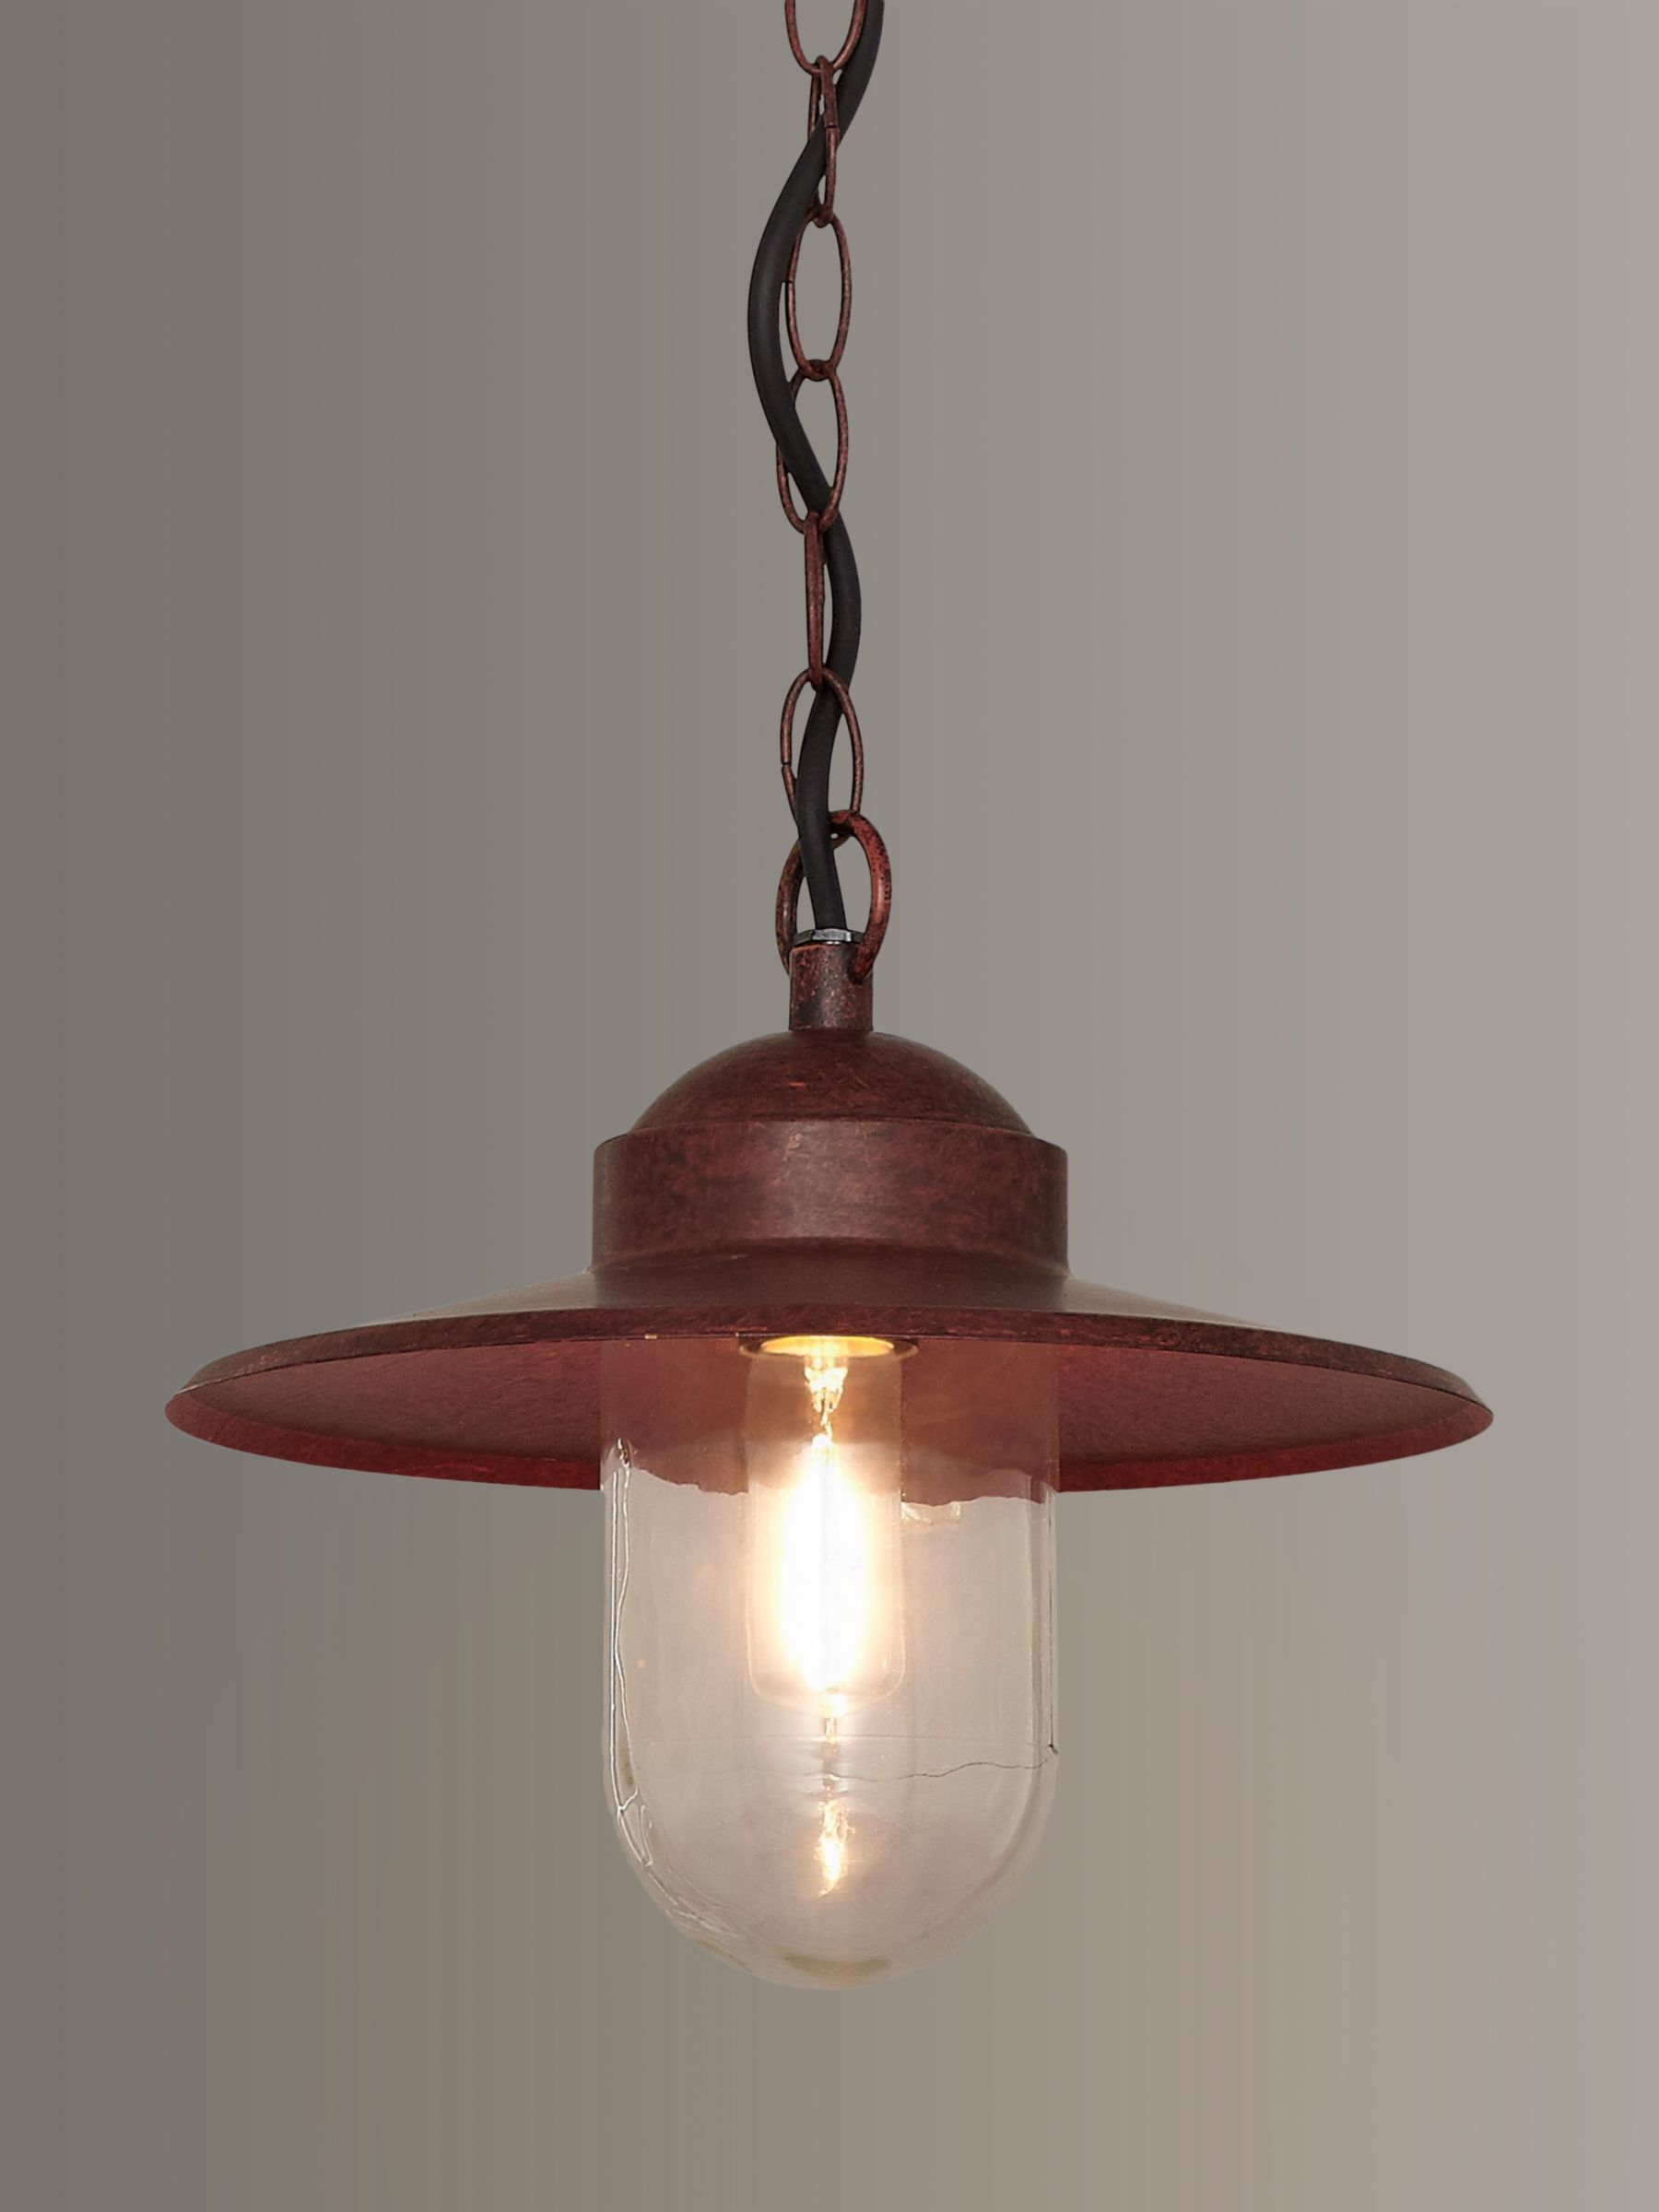 Nordlux Nordlux Luxembourg Outdoor Pendant, 'Weathered' Finish